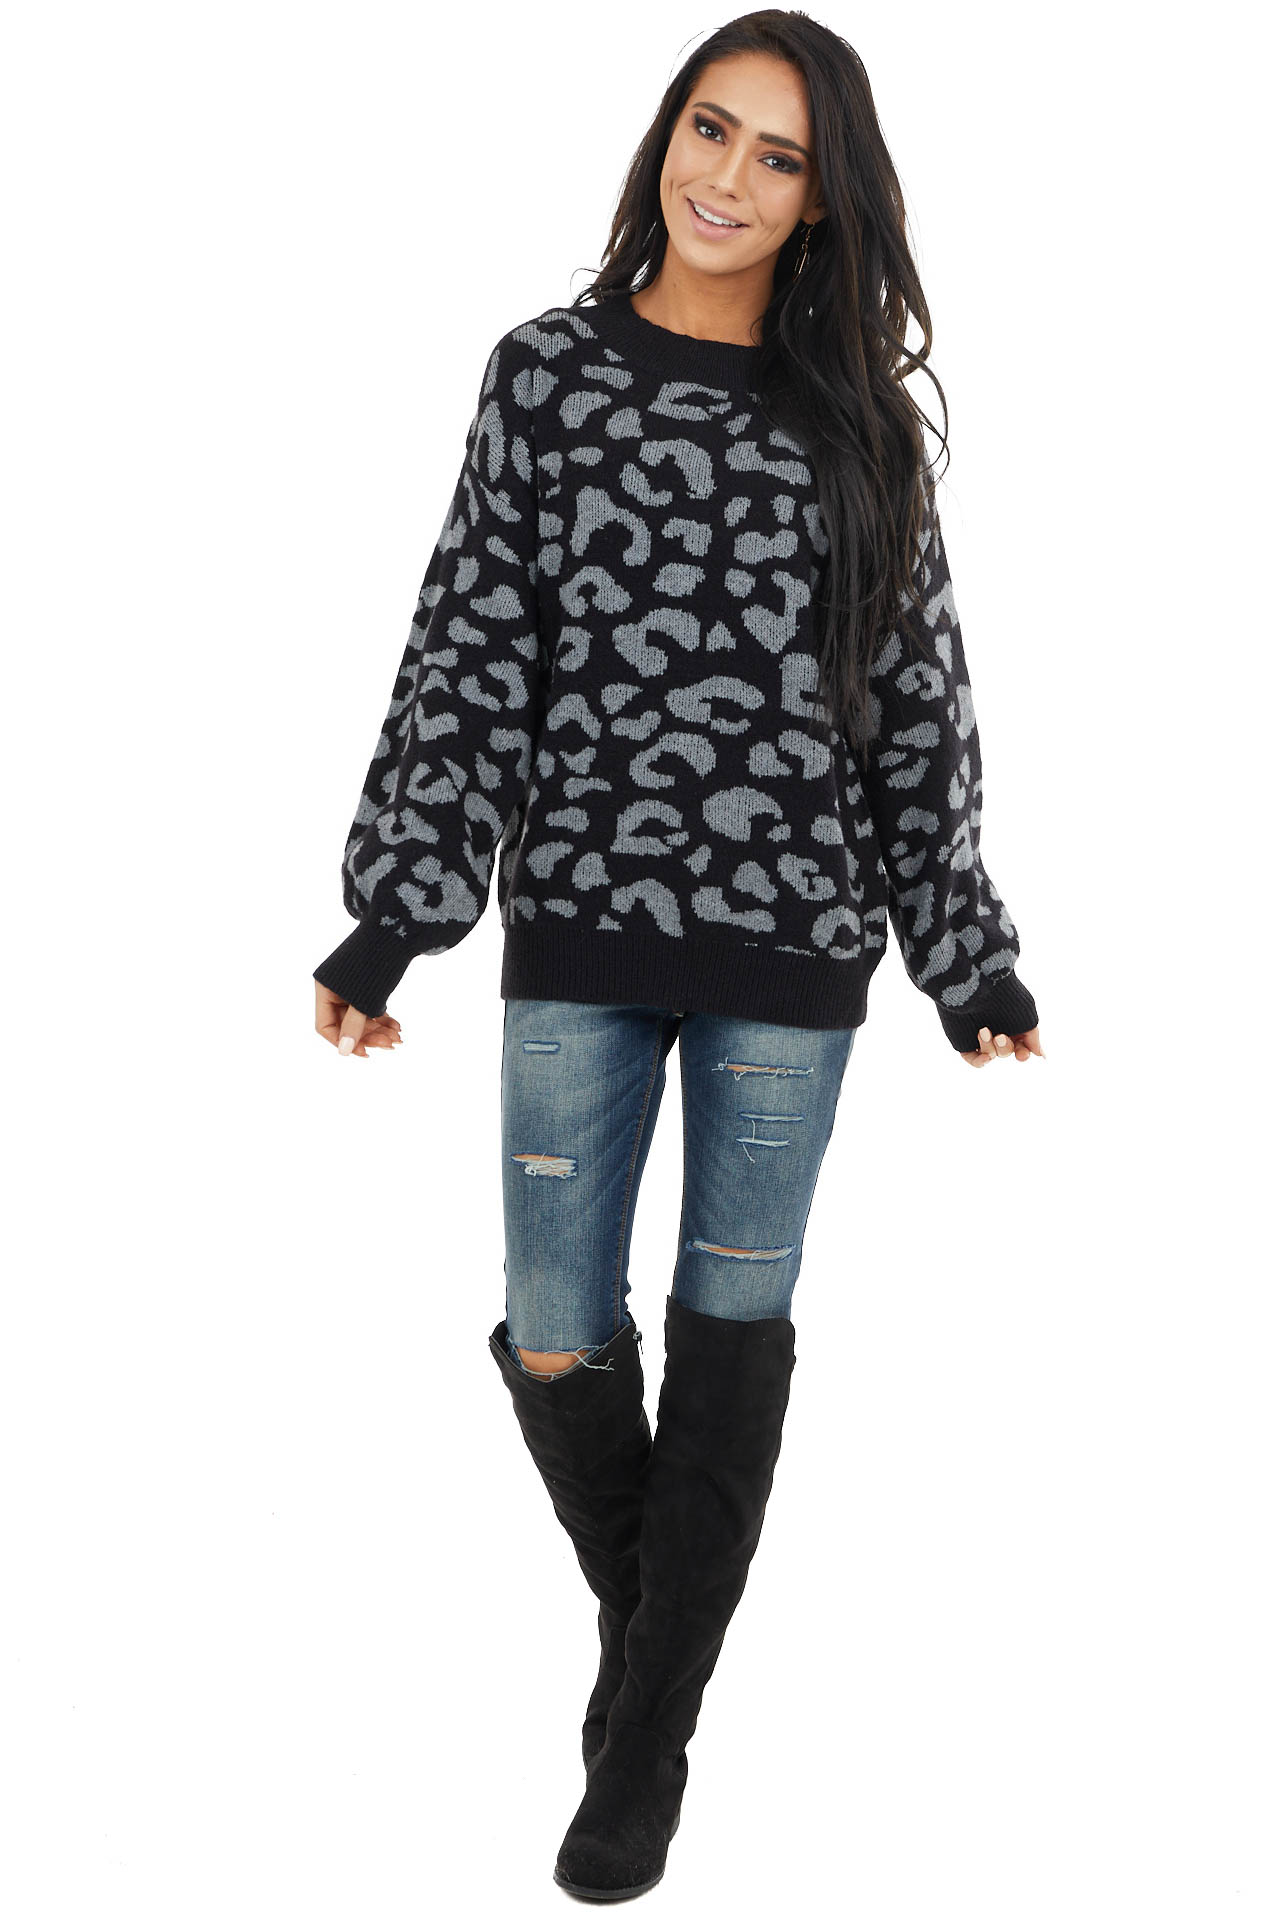 Black and Charcoal Leopard Print Sweater with Bubble Sleeves